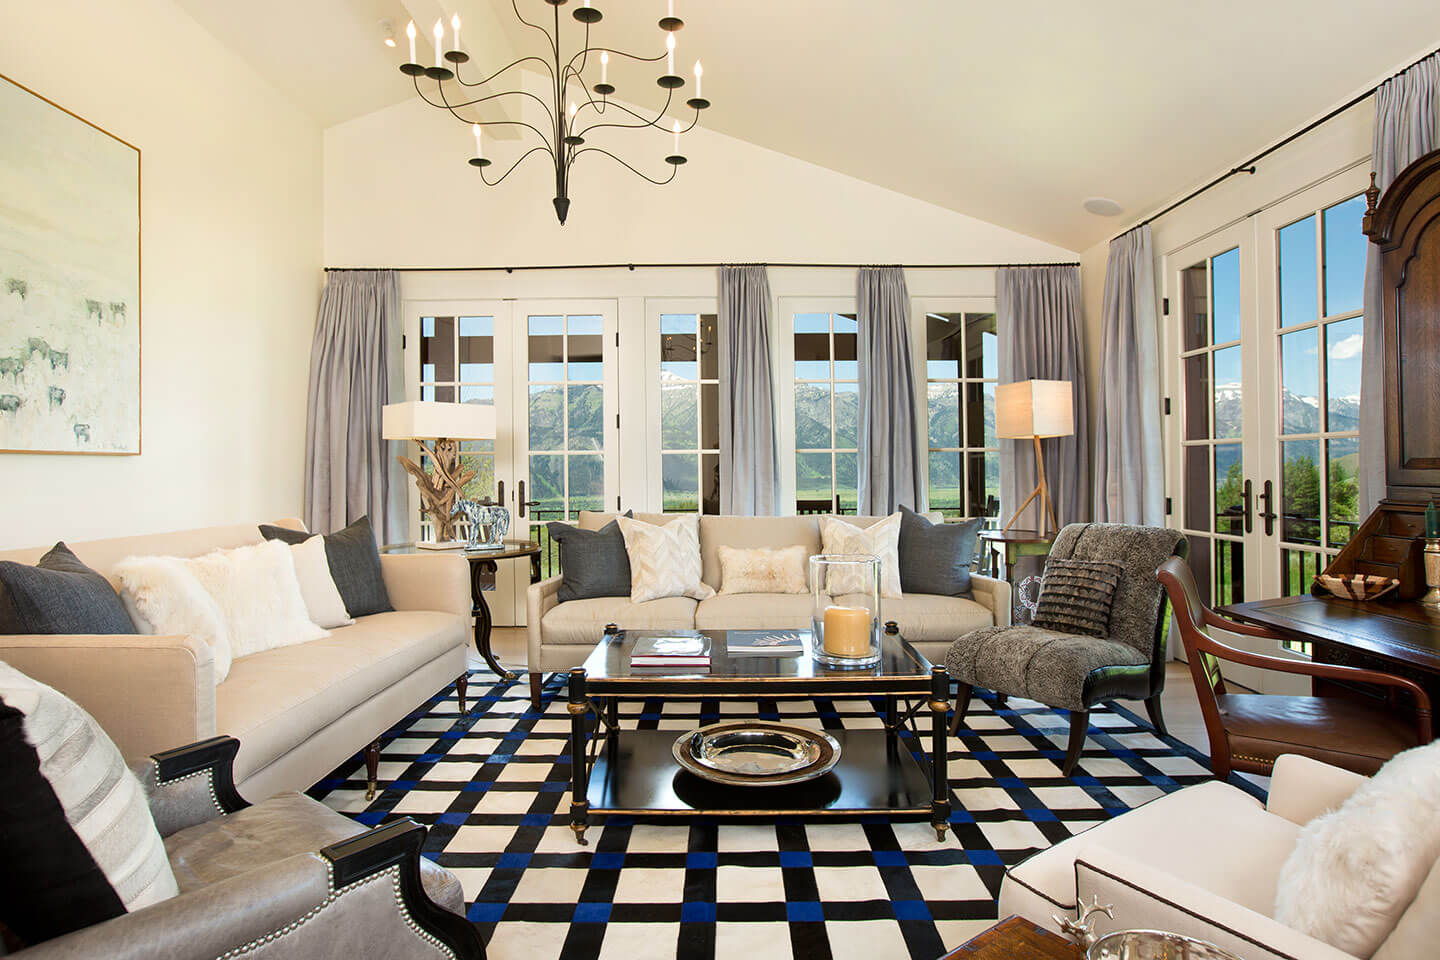 Classic living room with pattern rug and chandelier